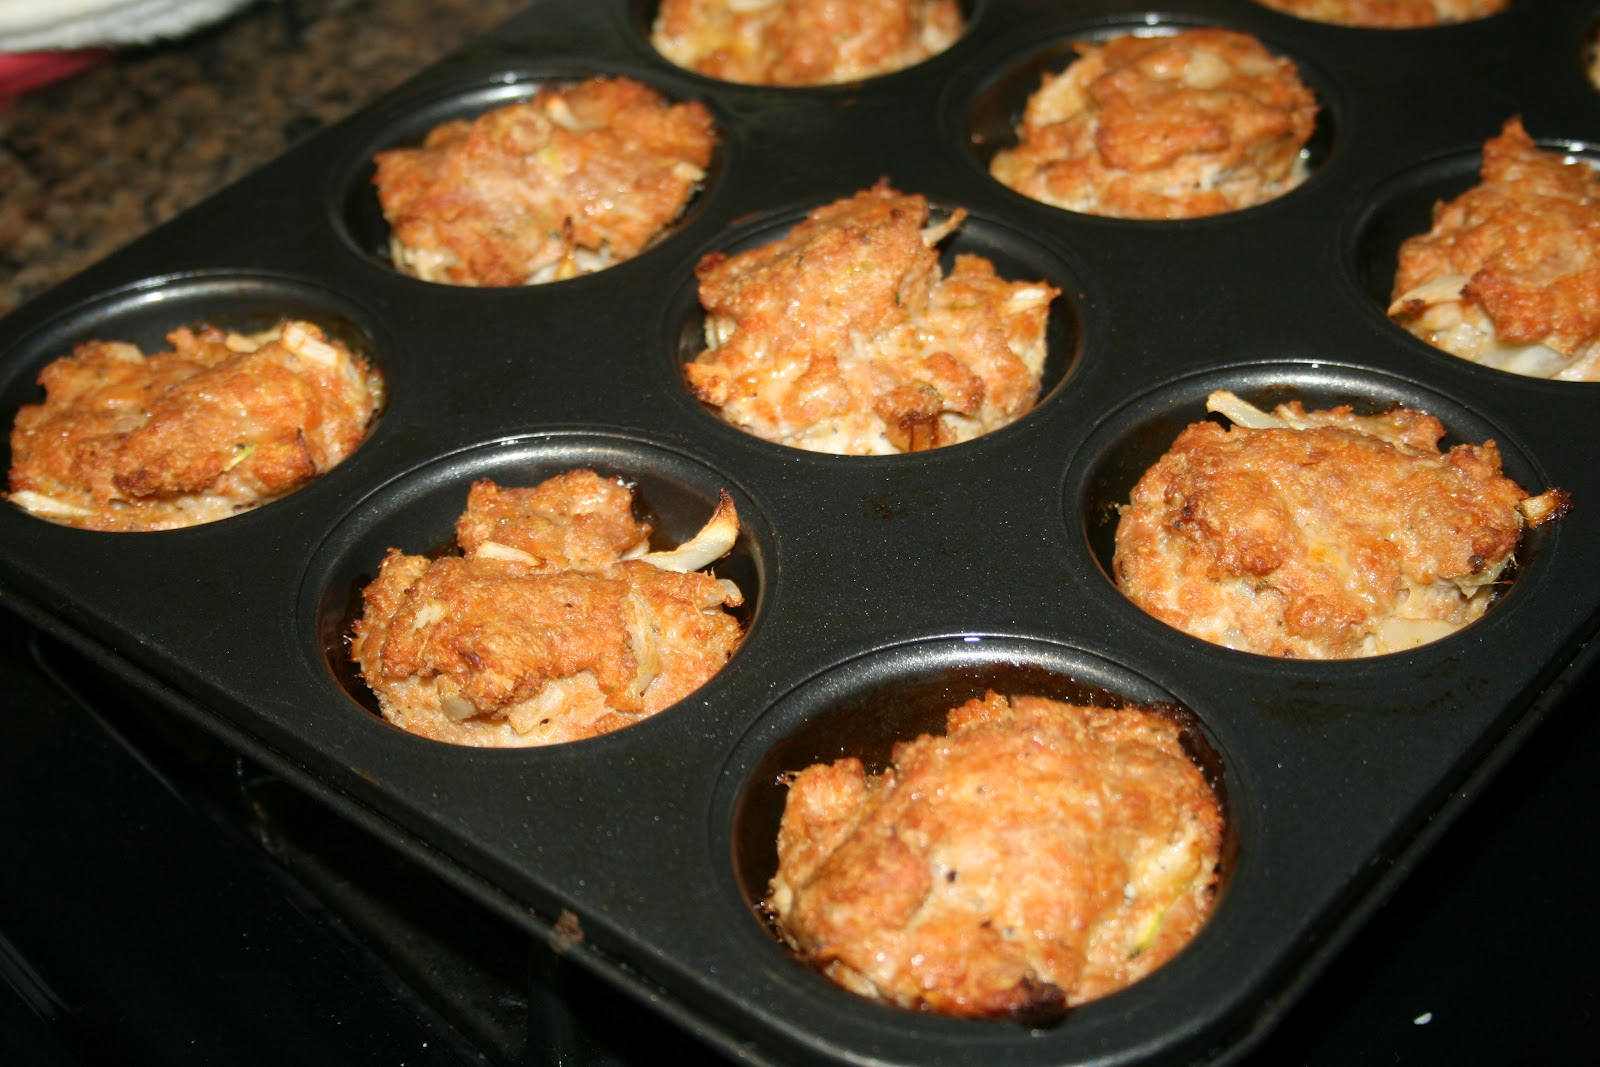 ... Homemade Cooking: Skinny Meatloaf Cupcakes With Mashed Potato Frosting